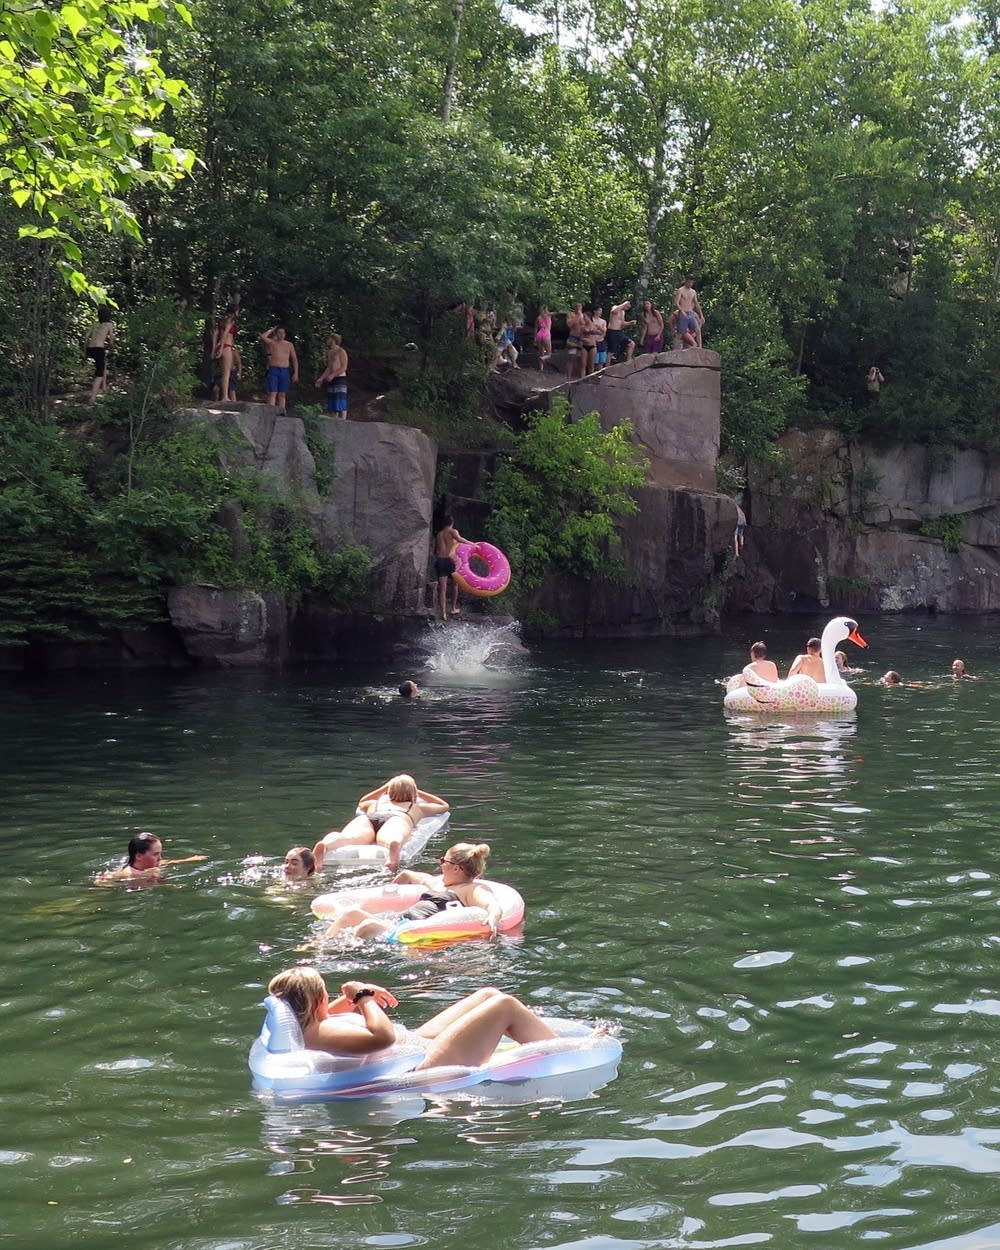 On hot days, thrill-seekers flock to Stearns County's Quarry